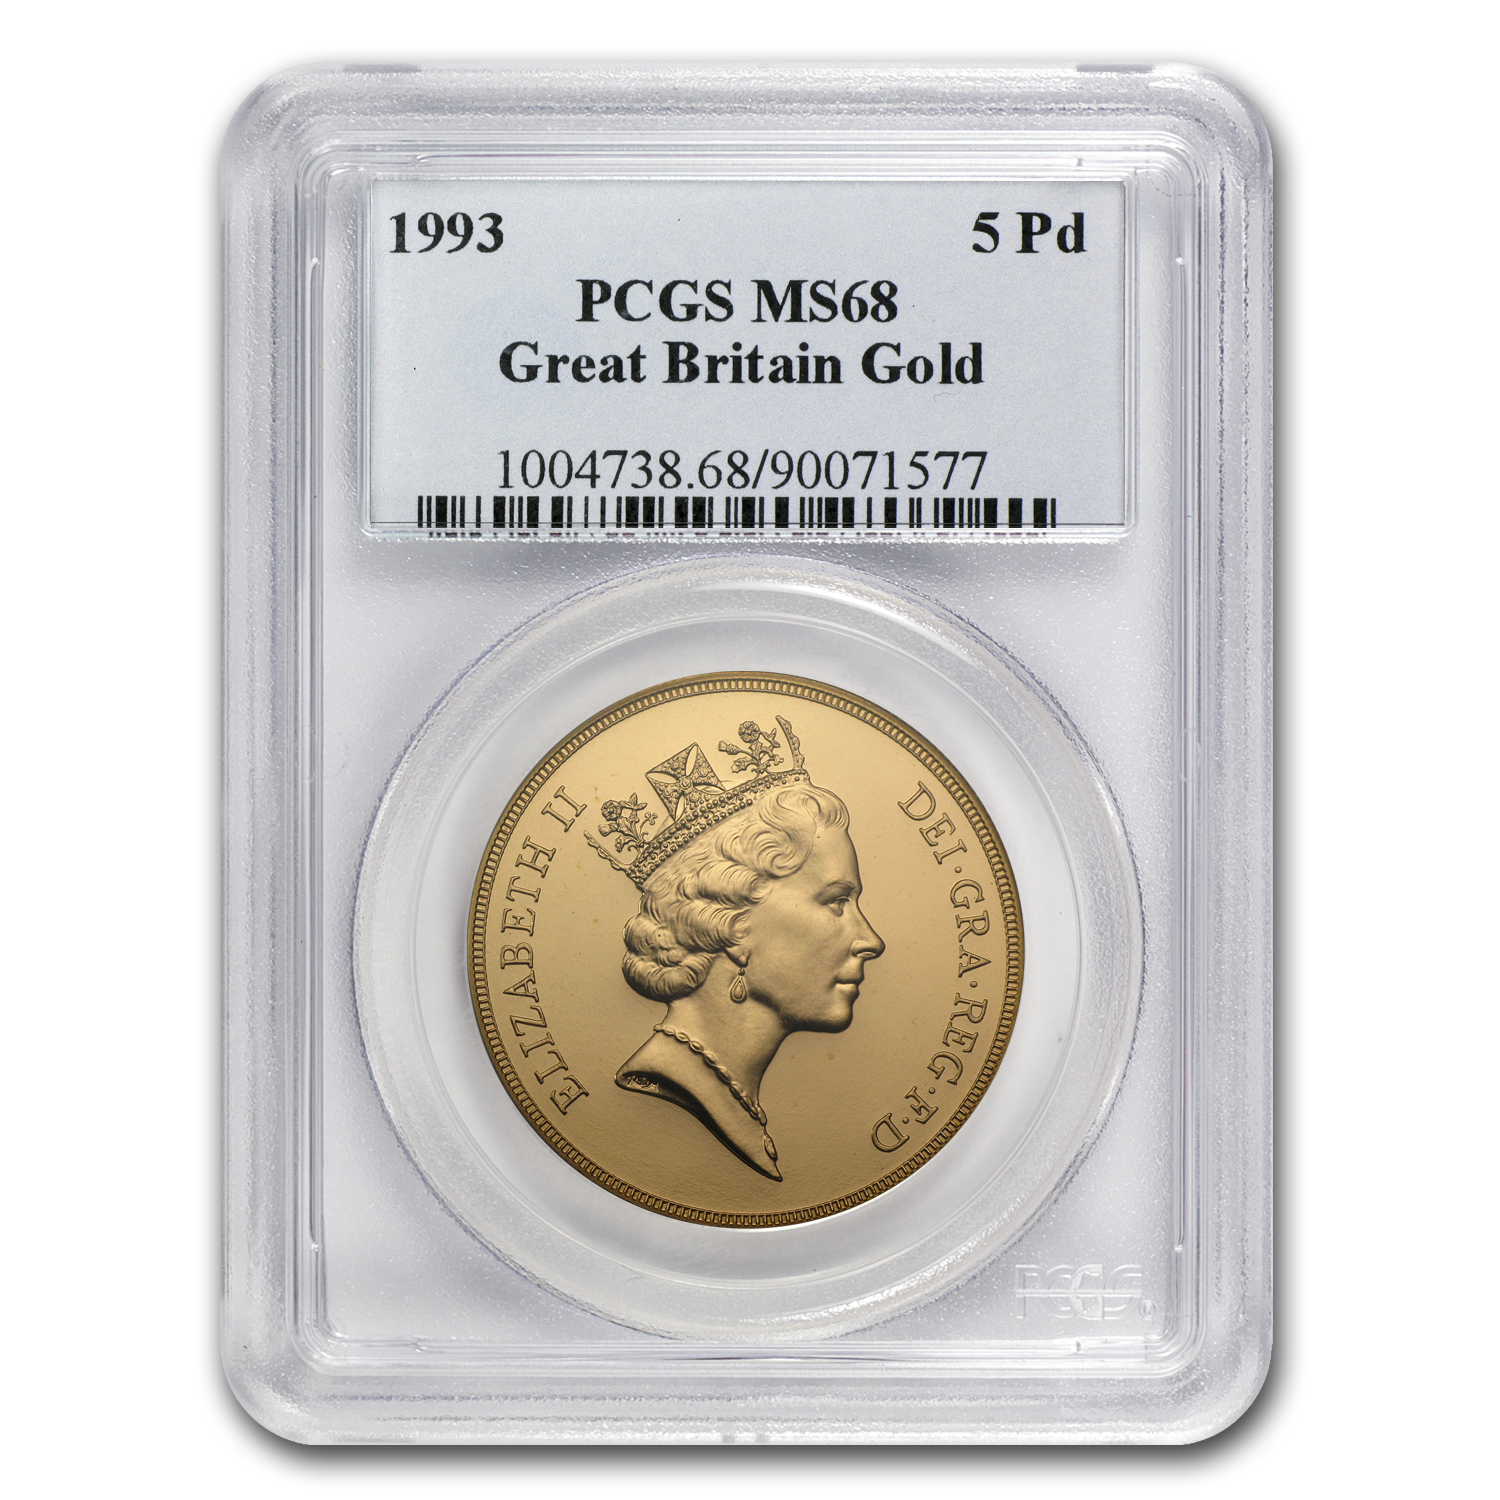 Great Britain 1993 £5 Gold - MS68 PCGS